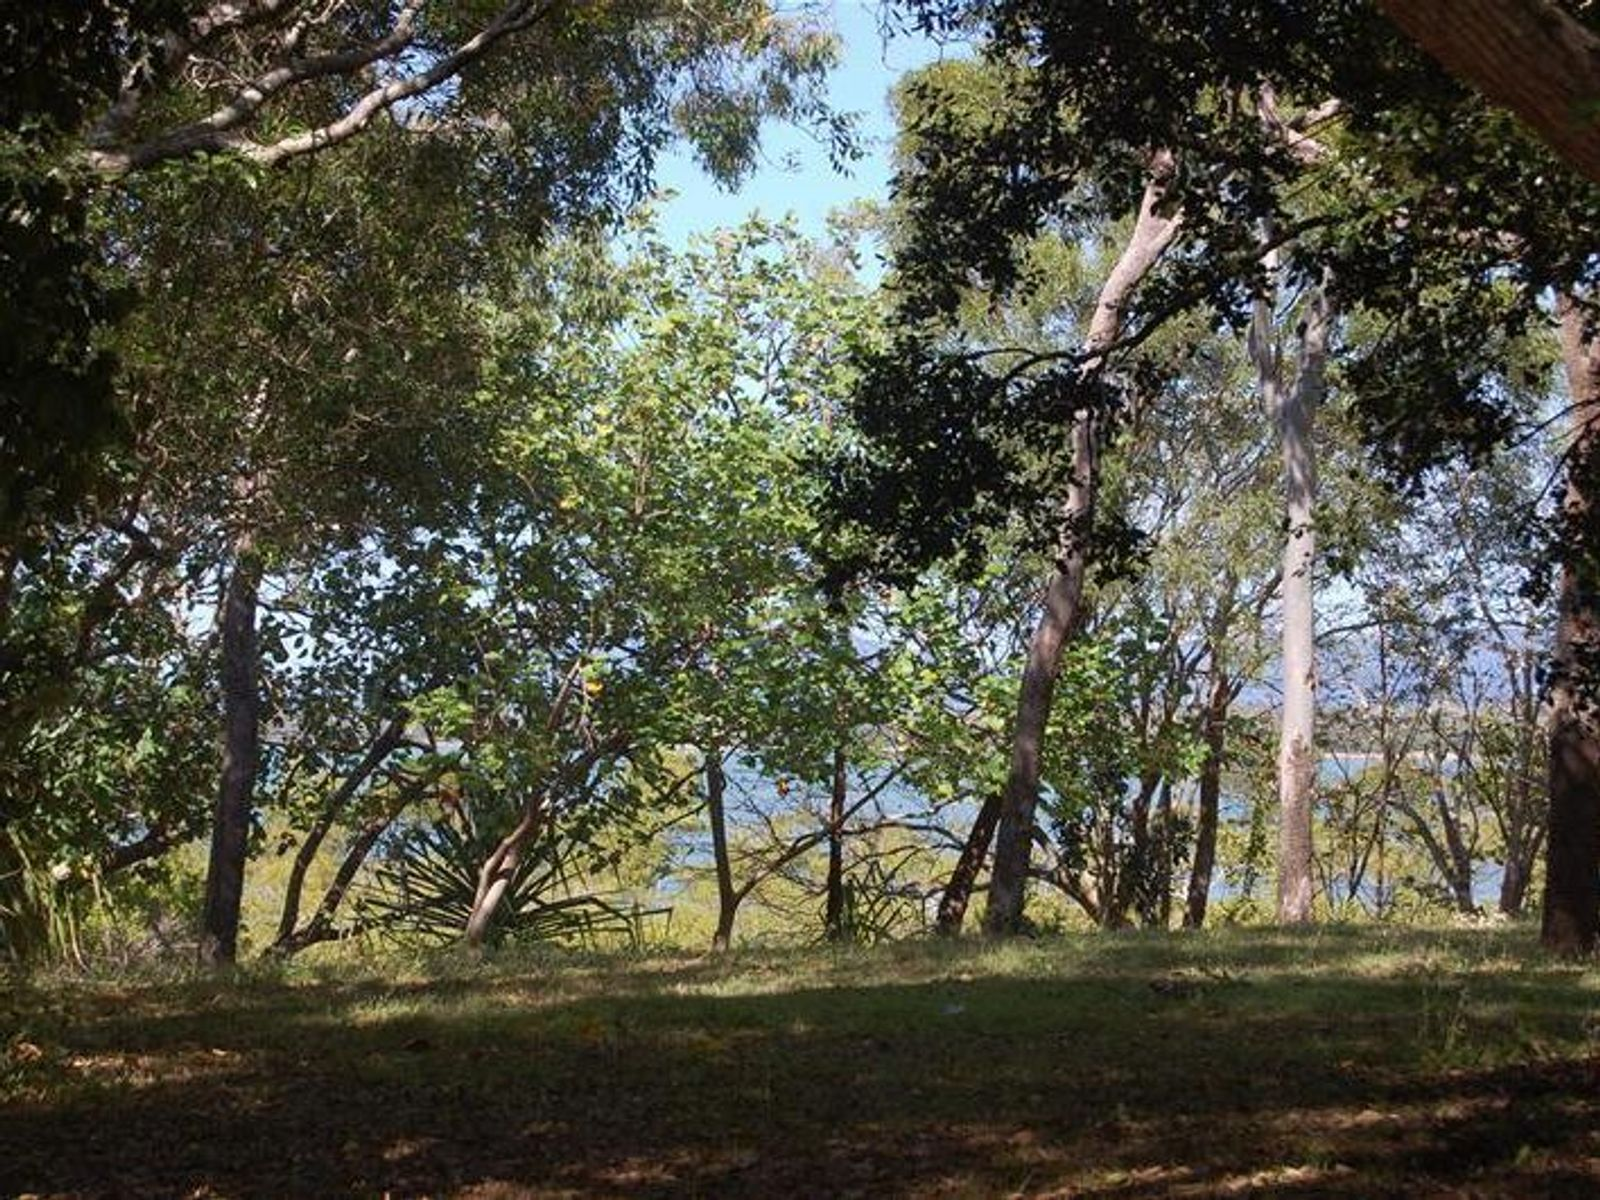 Lot 8 Miran Khan Drive, Freshwater Point, QLD 4737